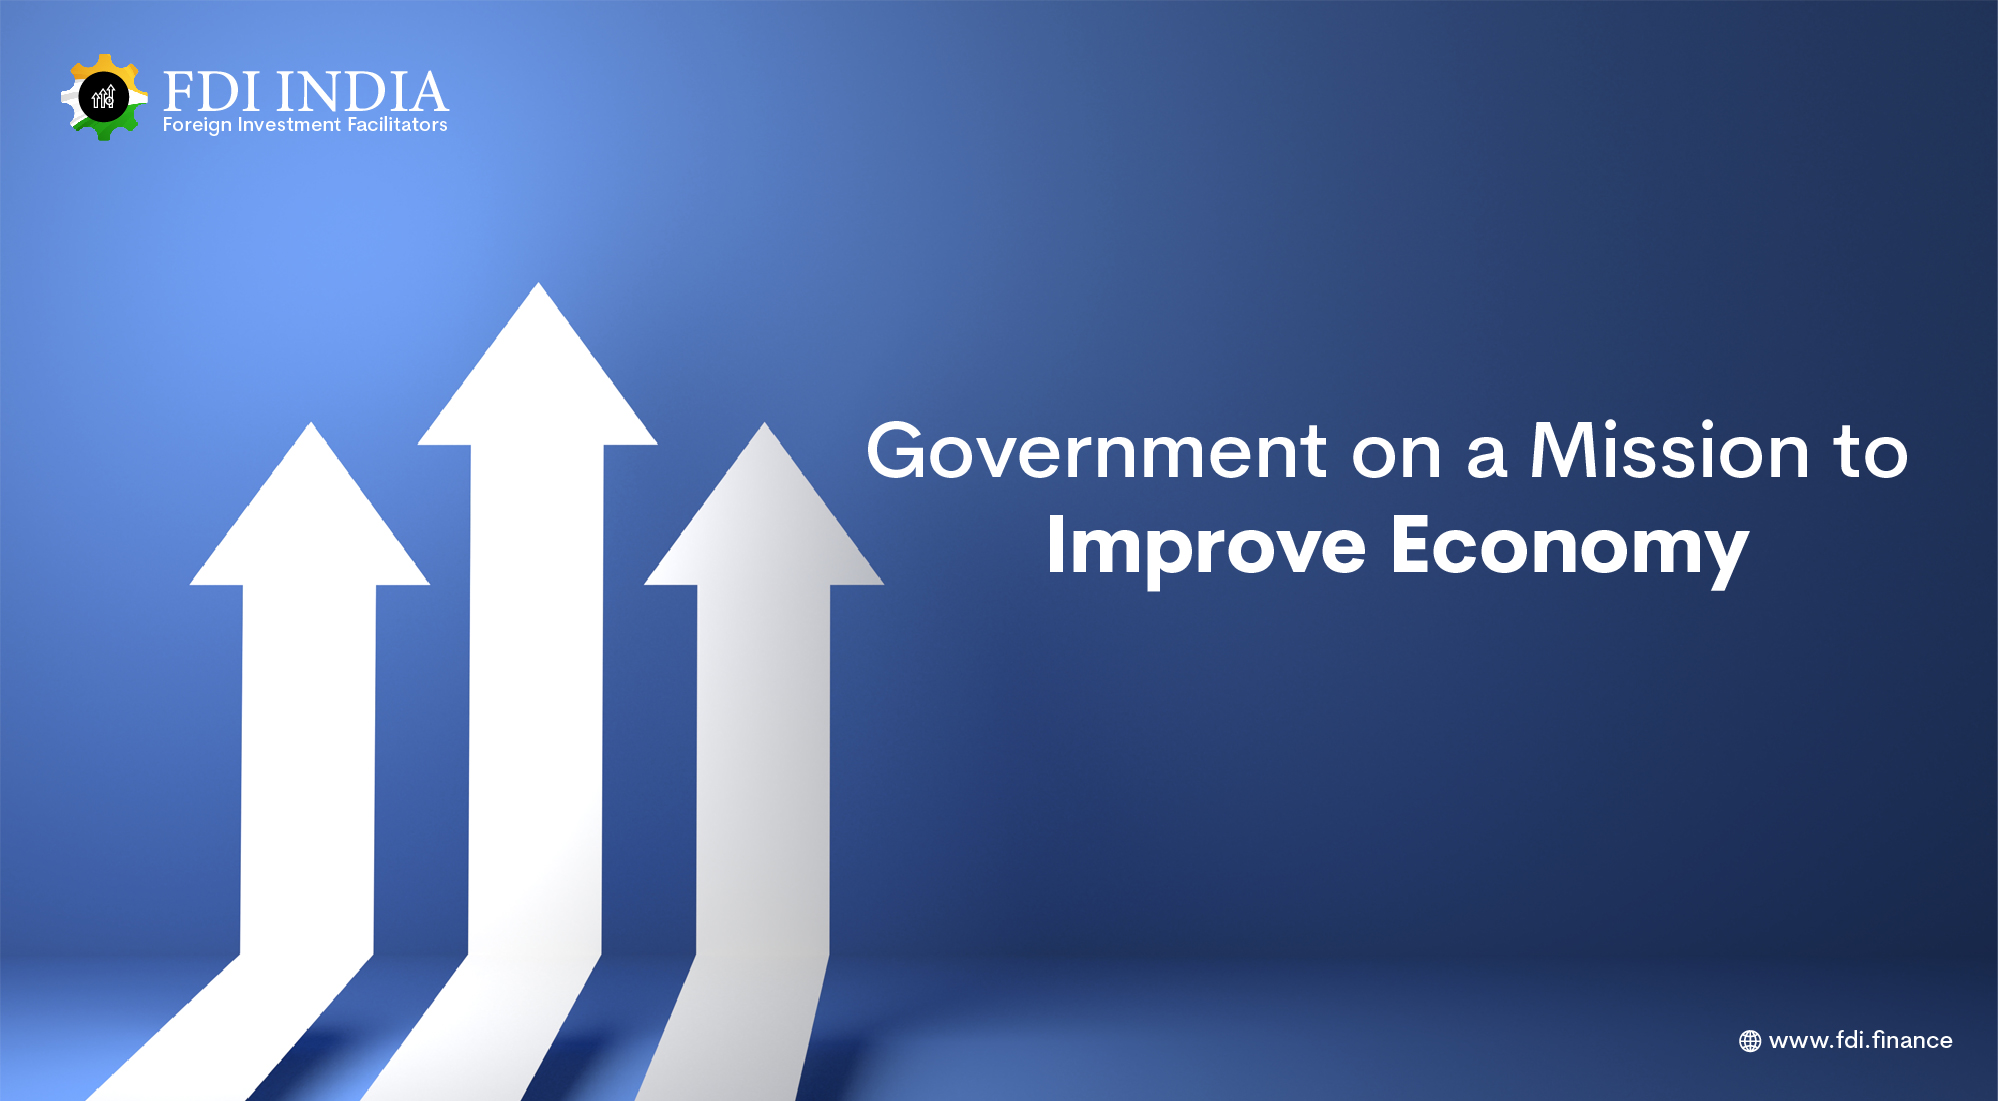 Government on a Mission to Improve Economy